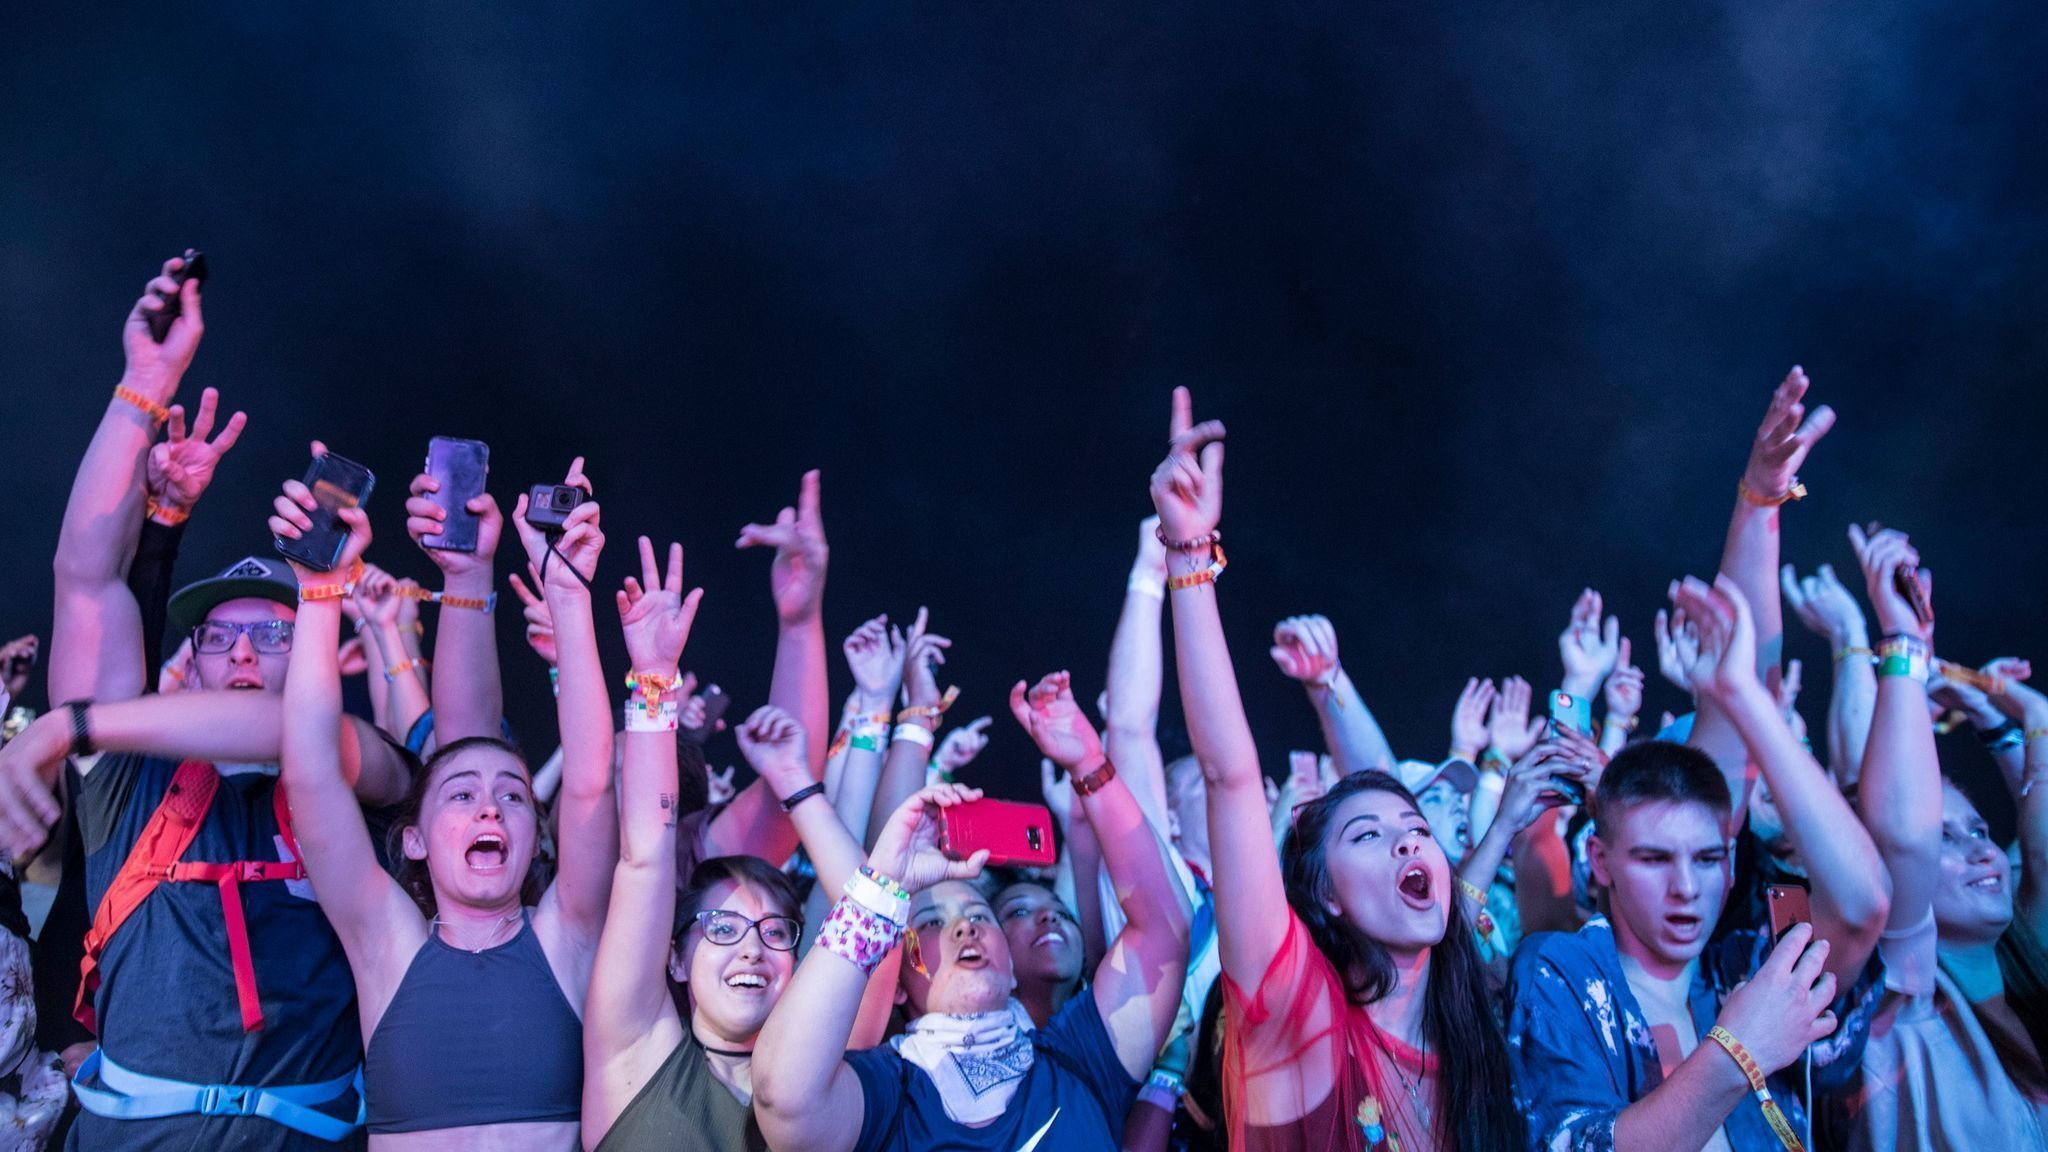 After years of silence, activists are forcing music festivals to take sexual assault seriously